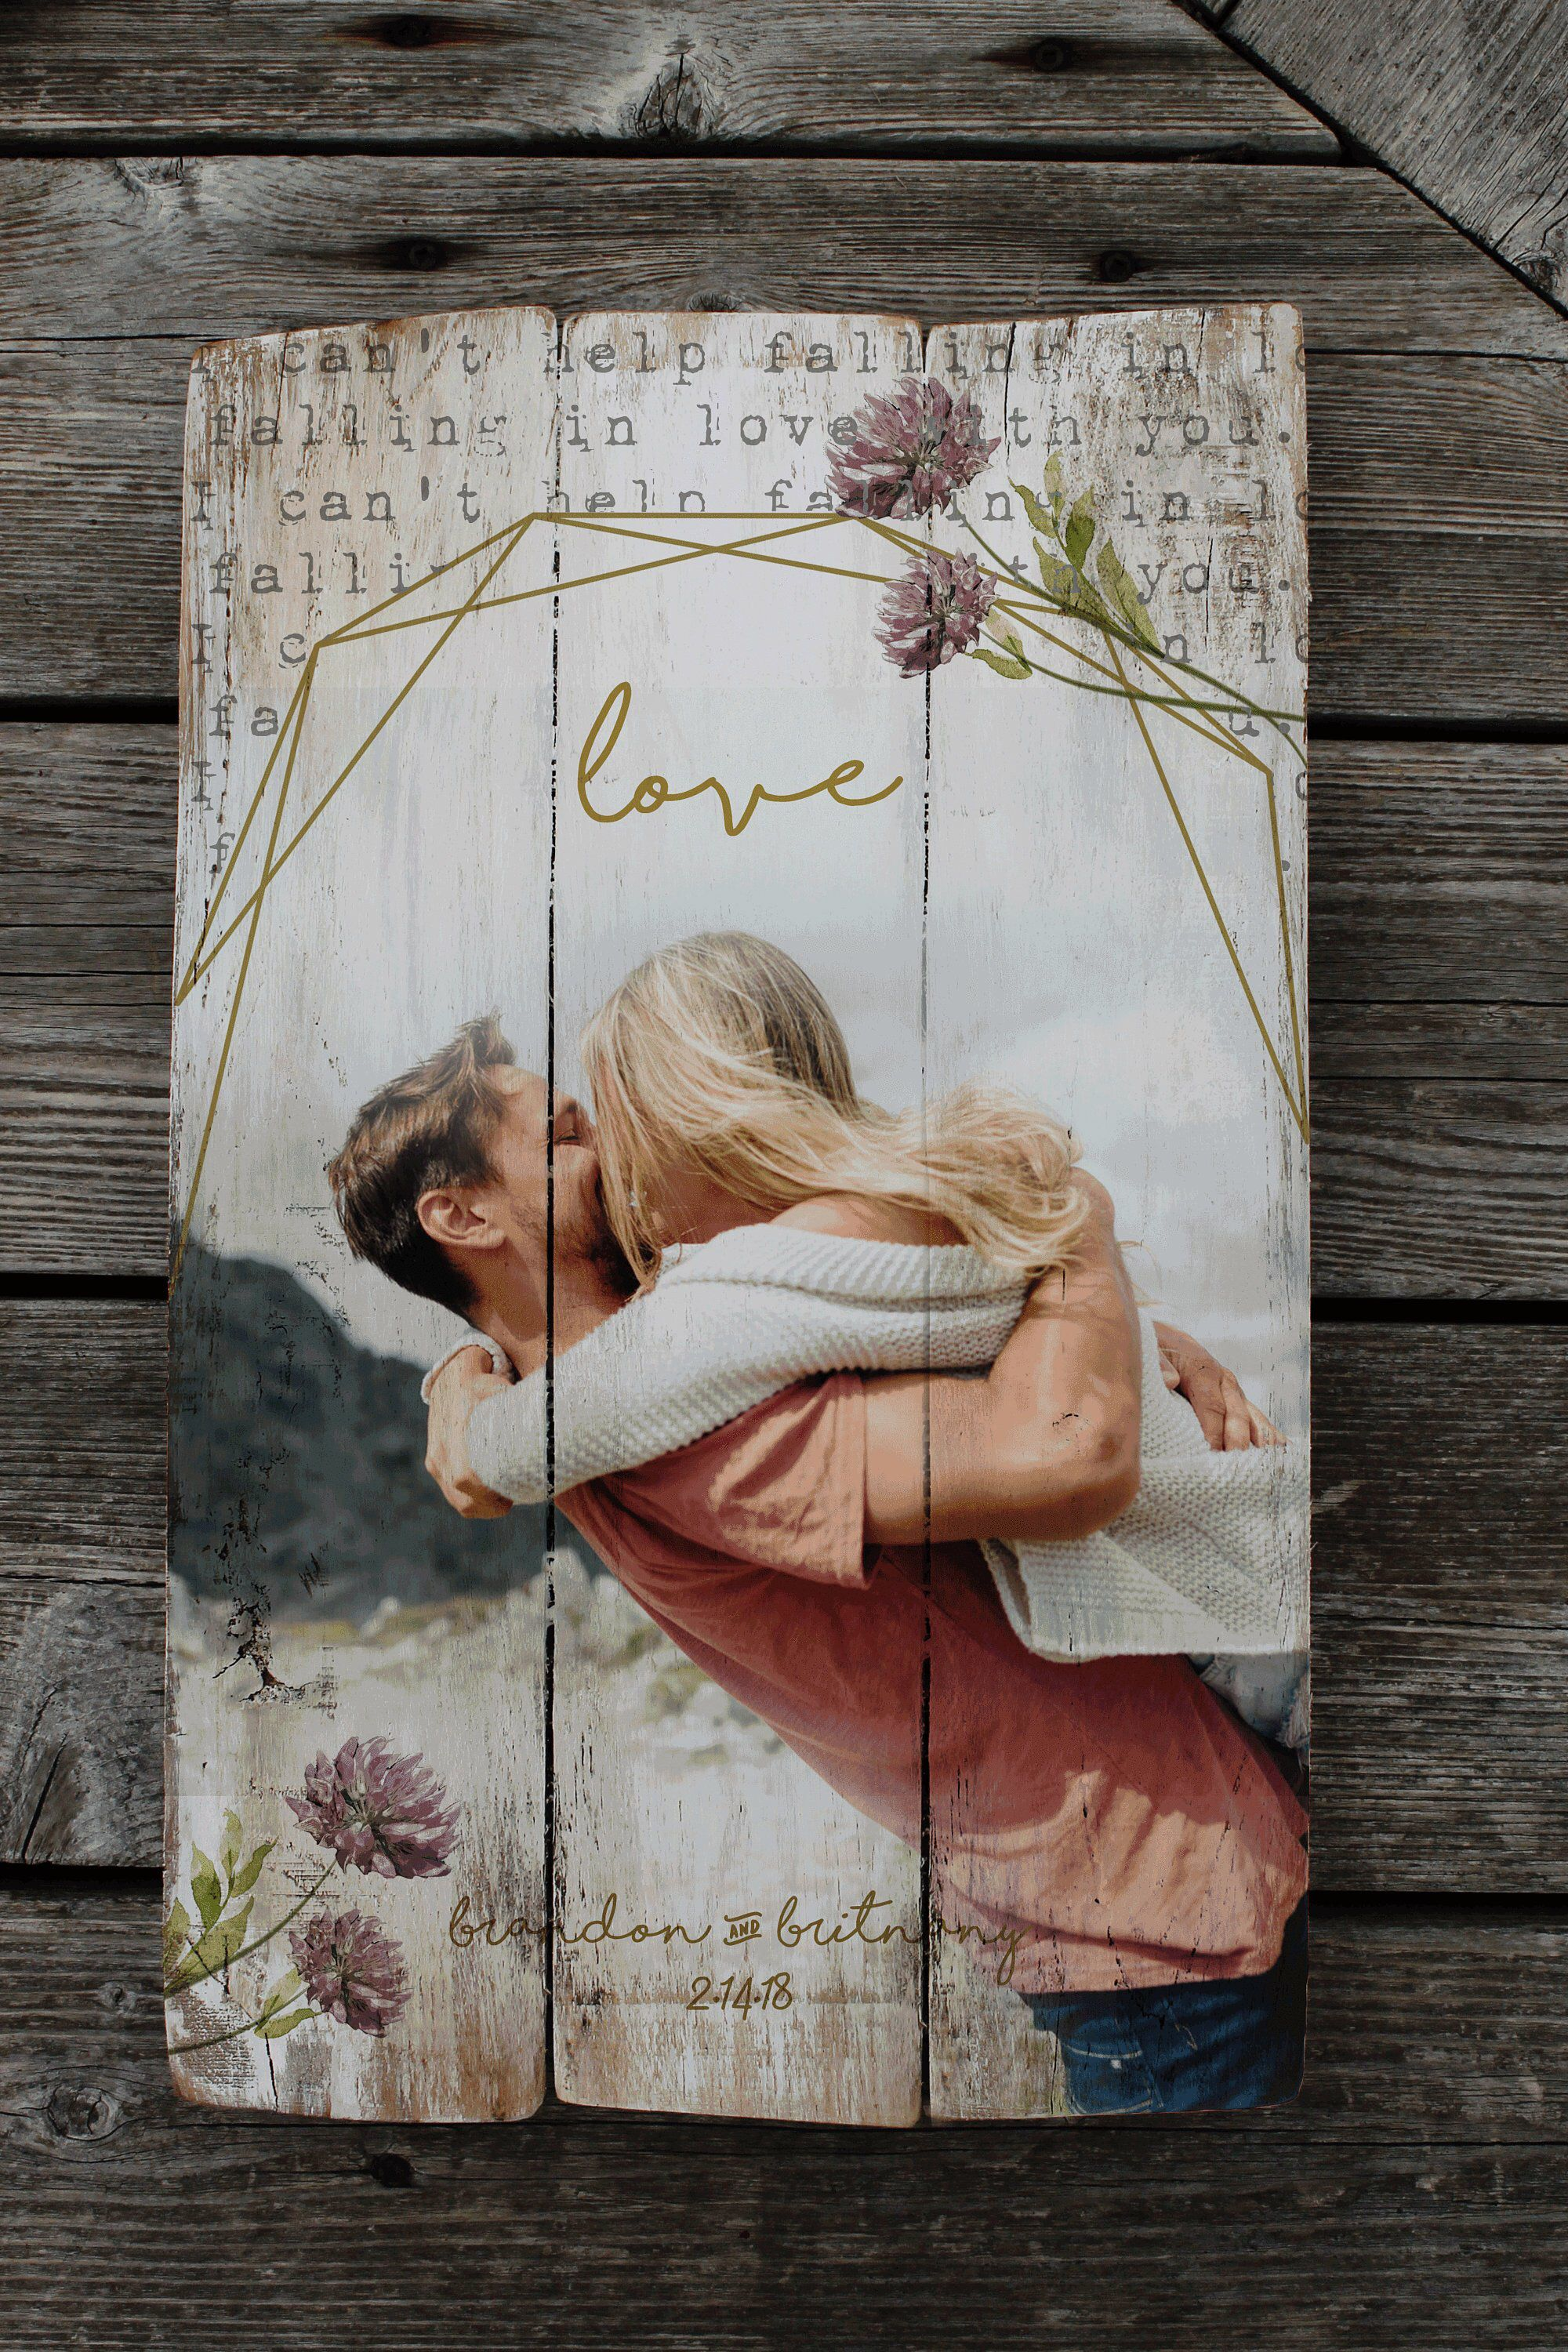 Clover - photo on wood, Personalized Wedding gift, Personalized Photo Pallet, pallet sign, Personalized engagement gift, Wedding gift,photo #personalizedwedding